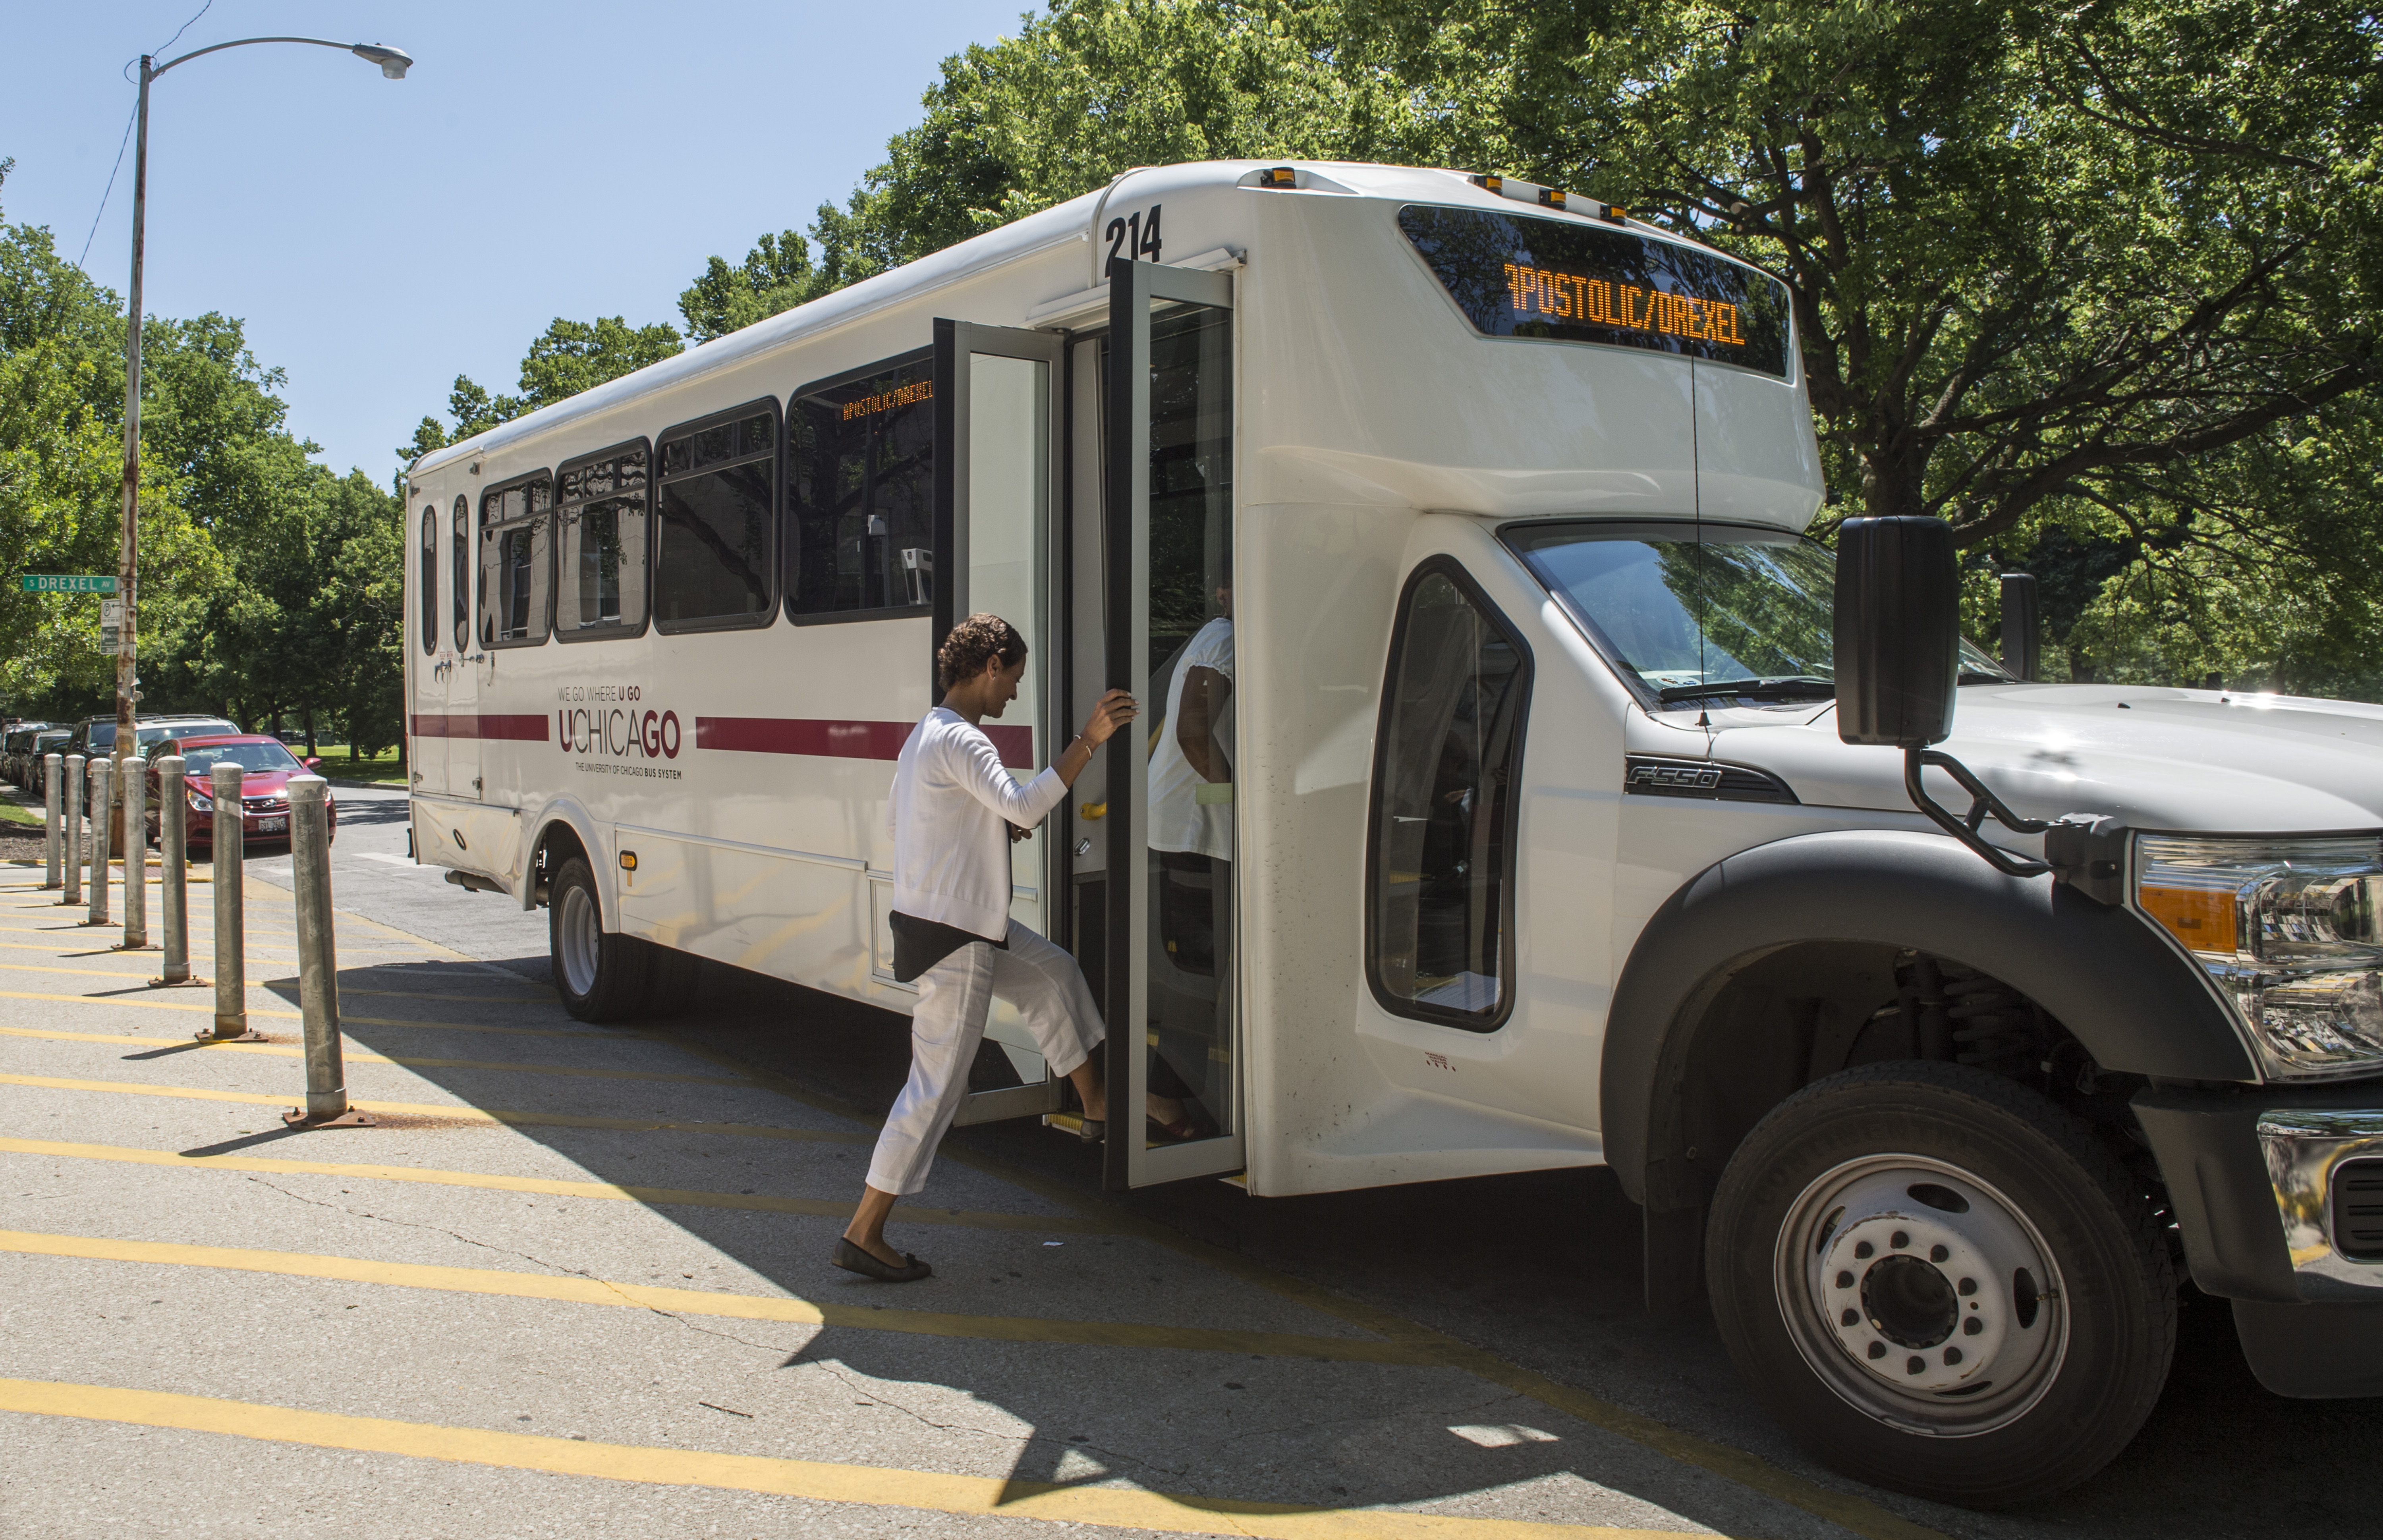 A member of the University community boards one of the UGo shuttles outside of a University of Chicago Medicine building.